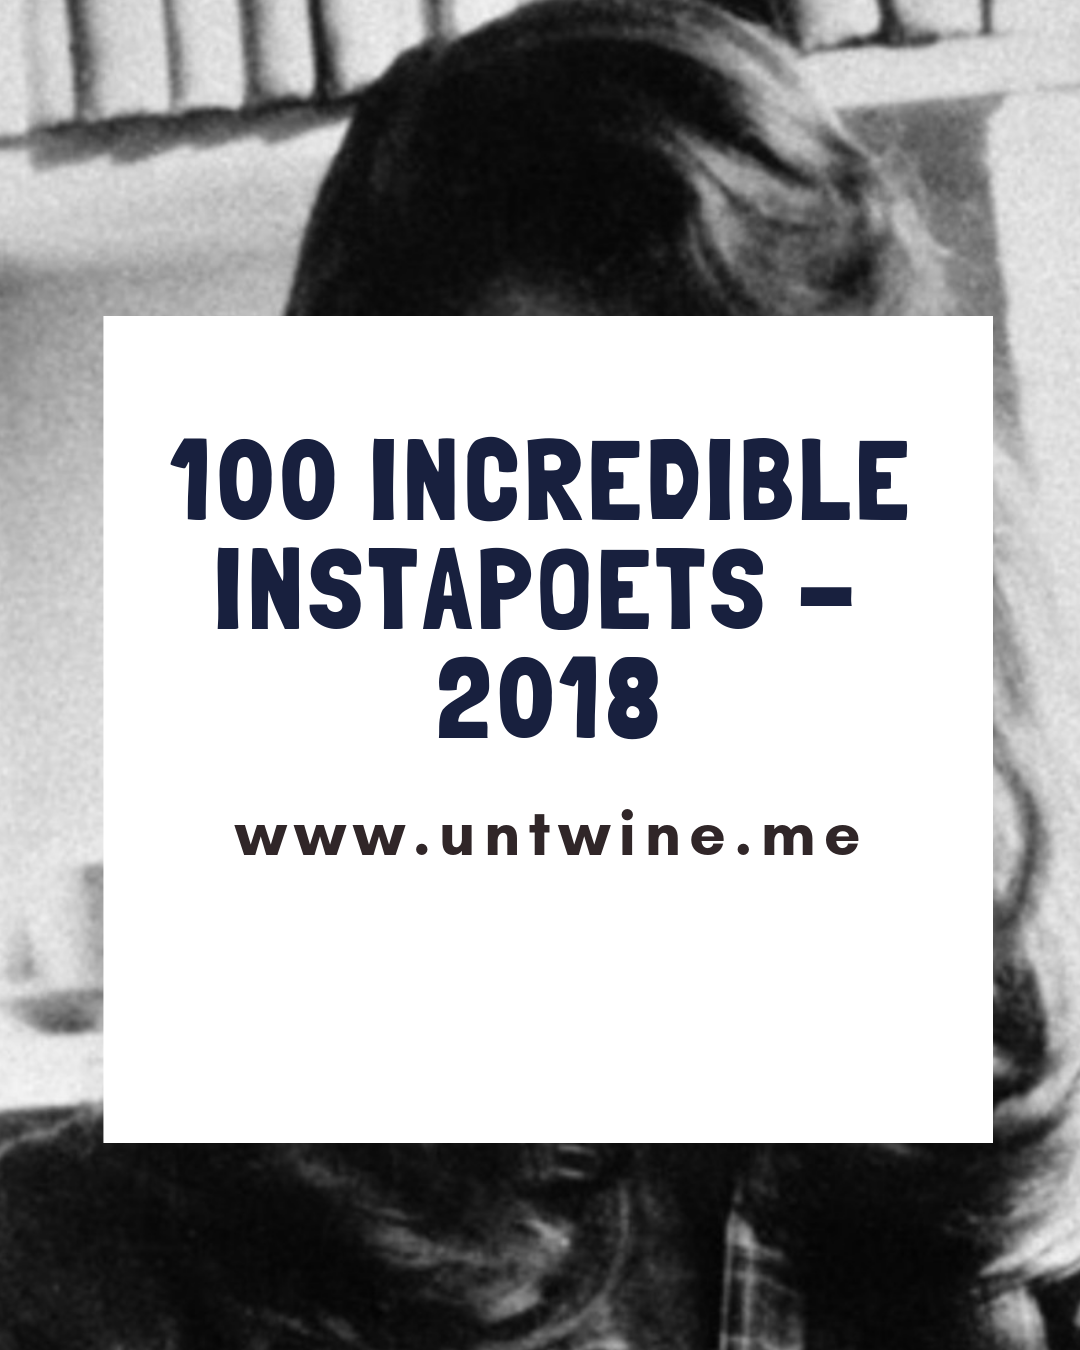 100 INCREDIBLE INSTAPOETS OF 2018: JON LUPIN